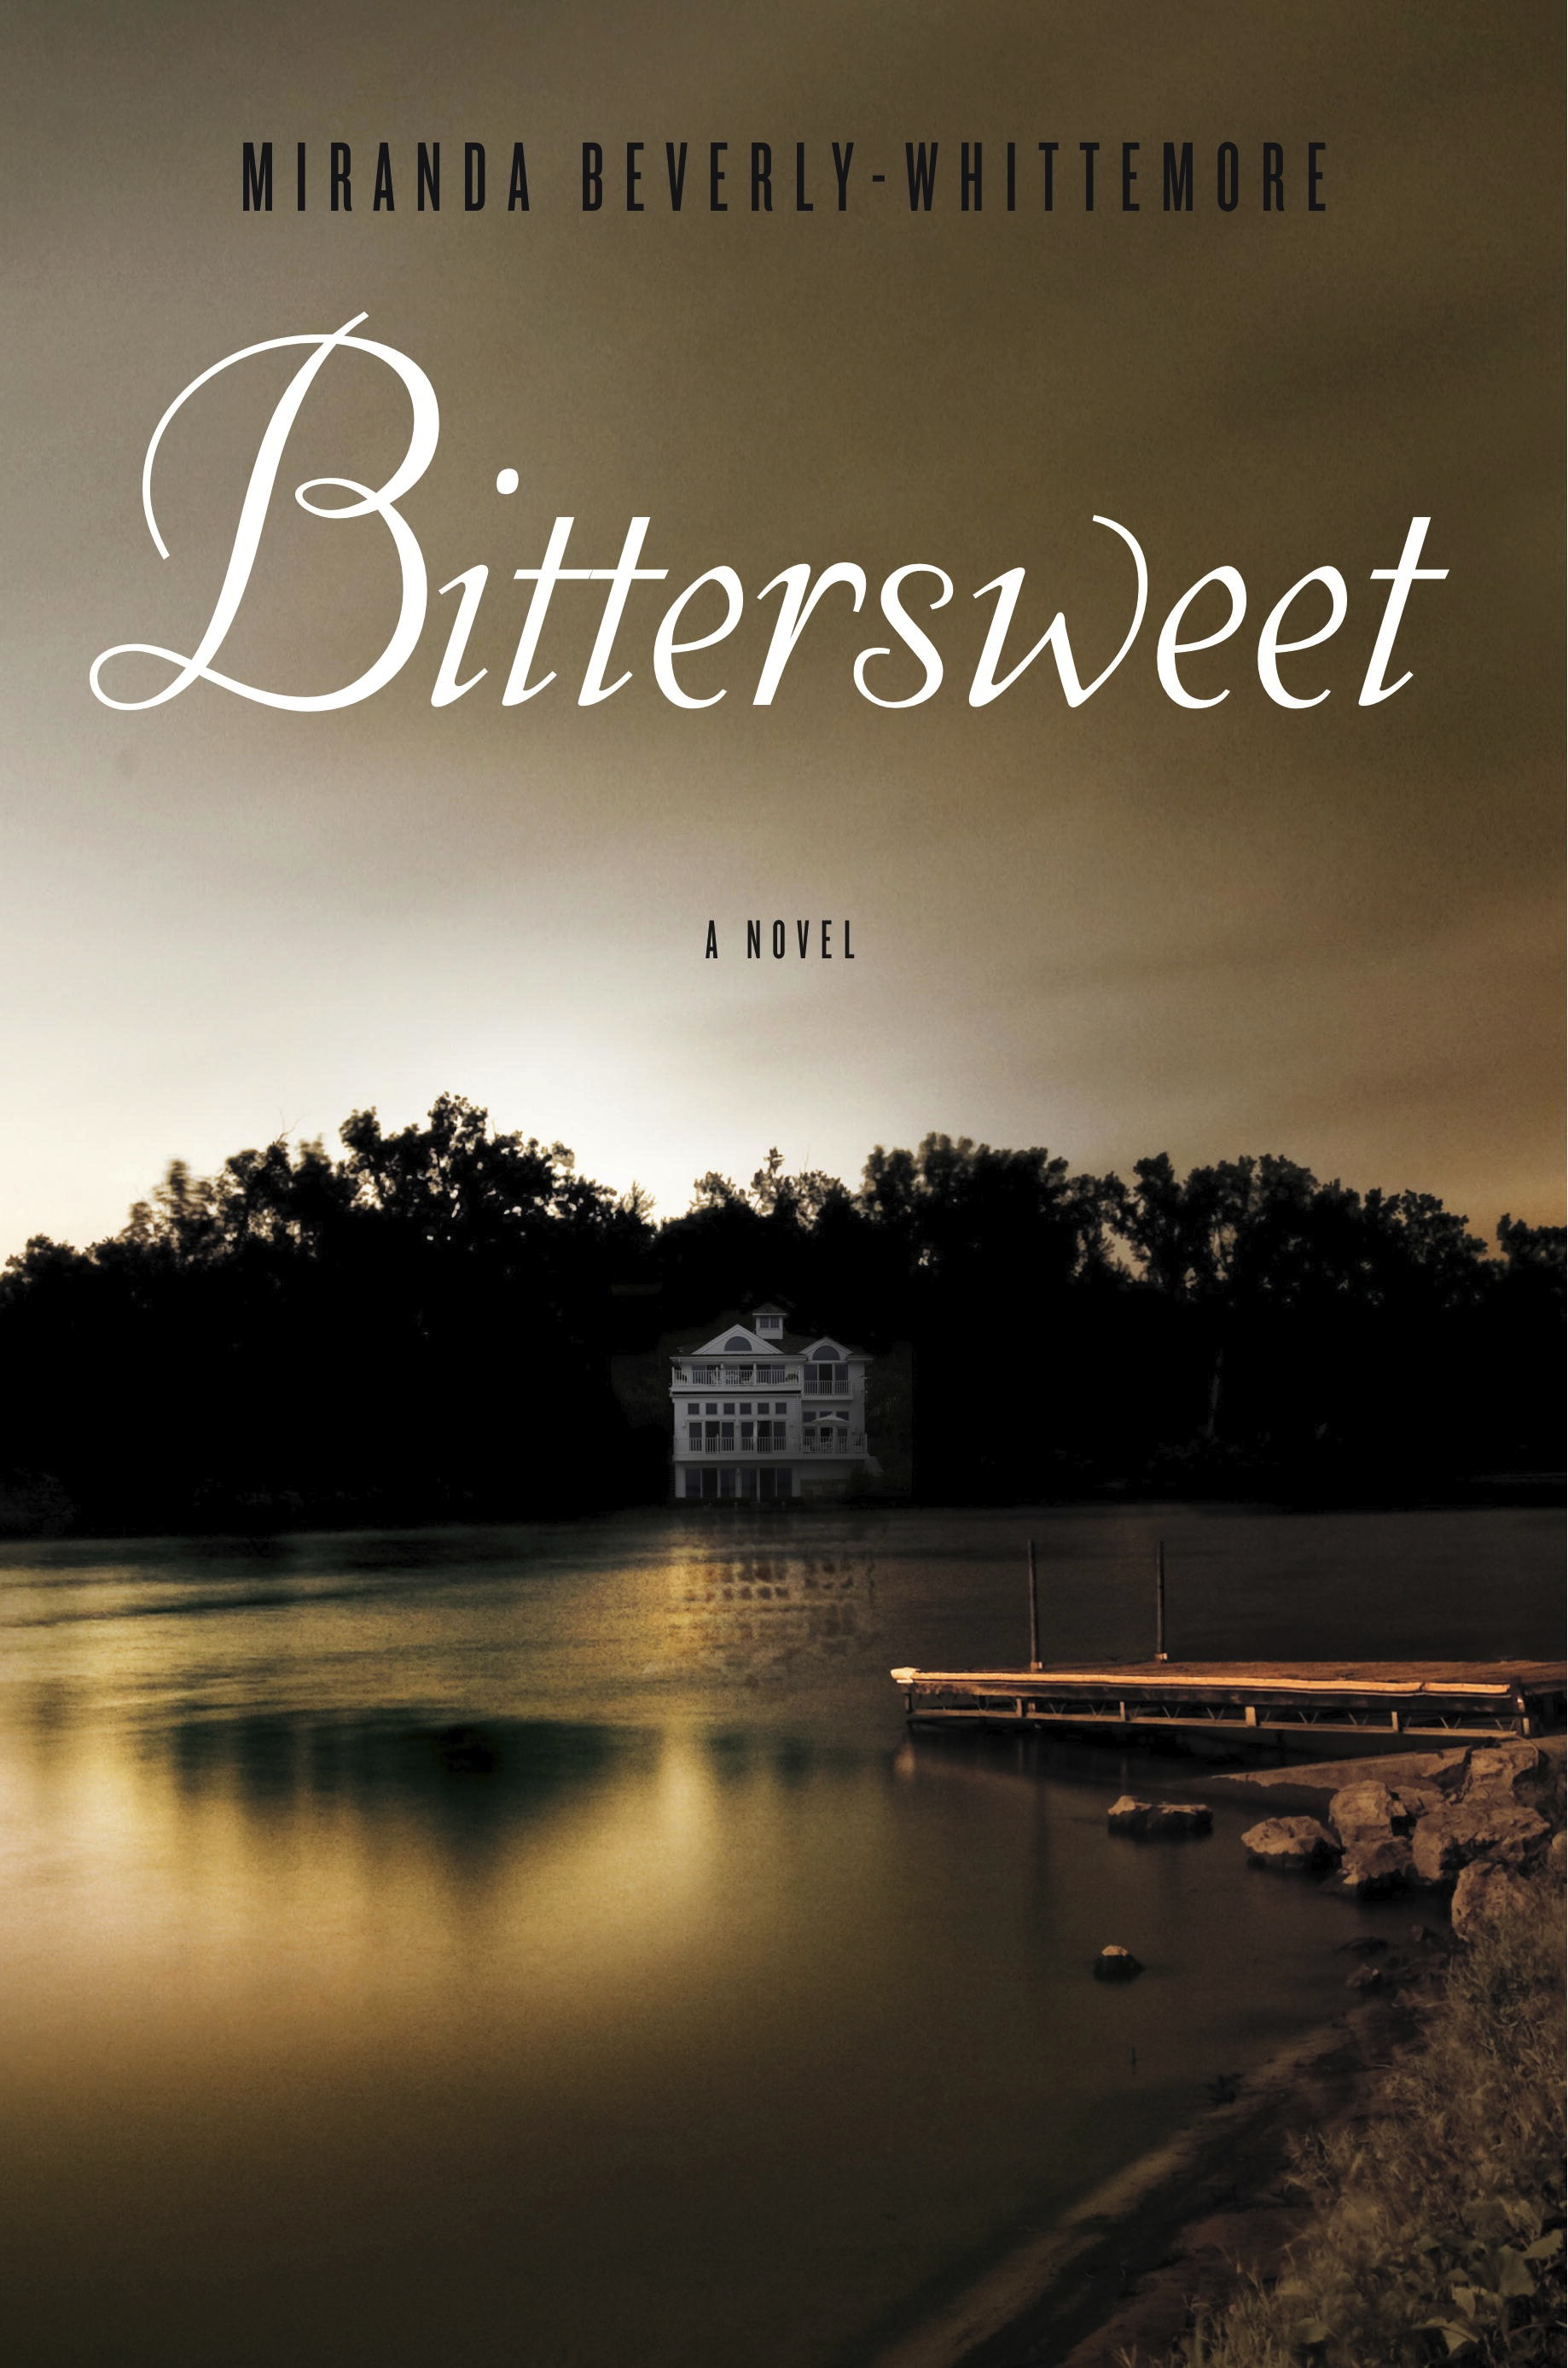 bittersweet-cover-10-9-13-final